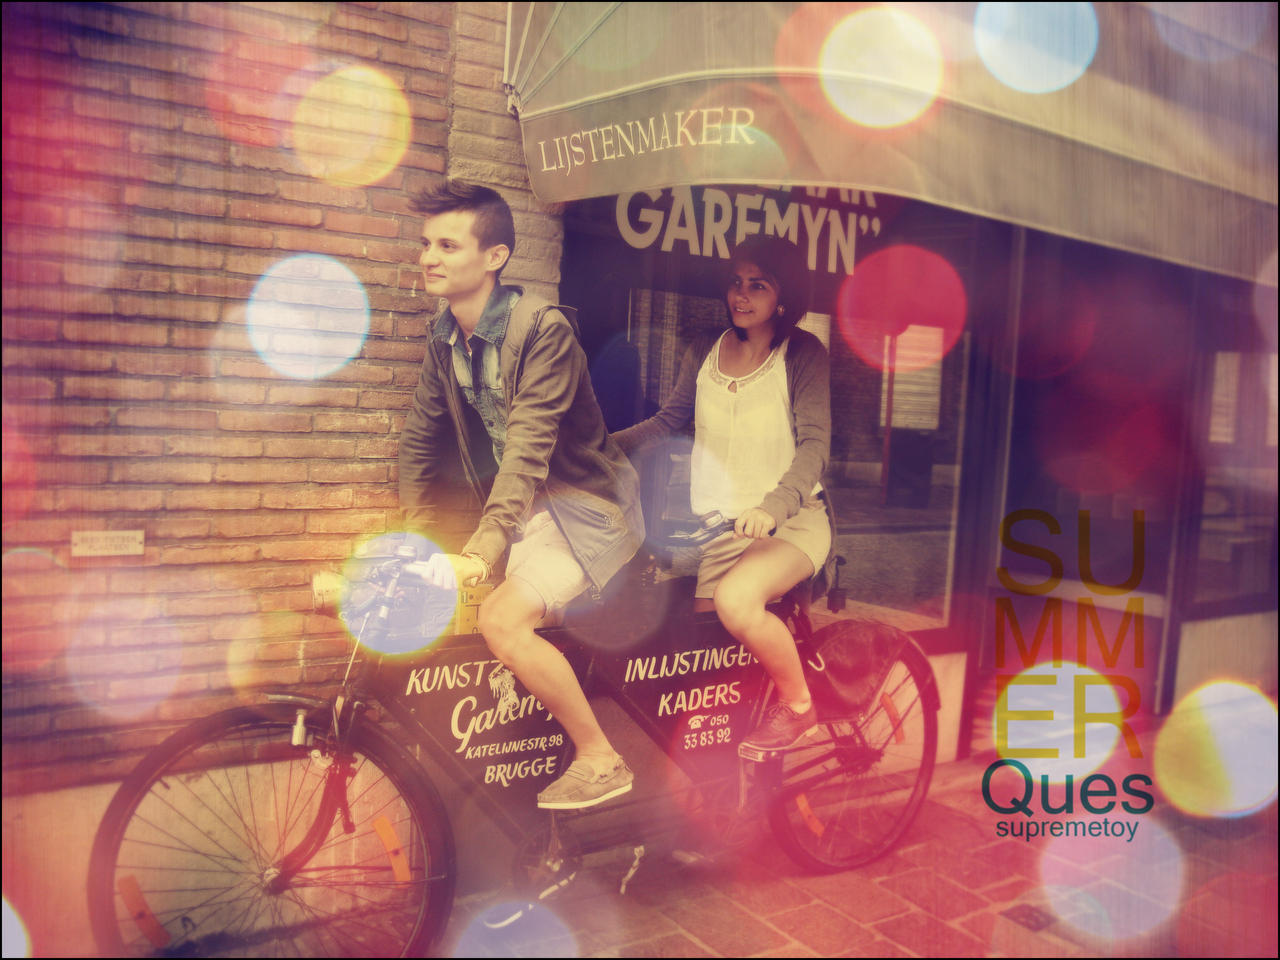 Ques2 by SummerTOy